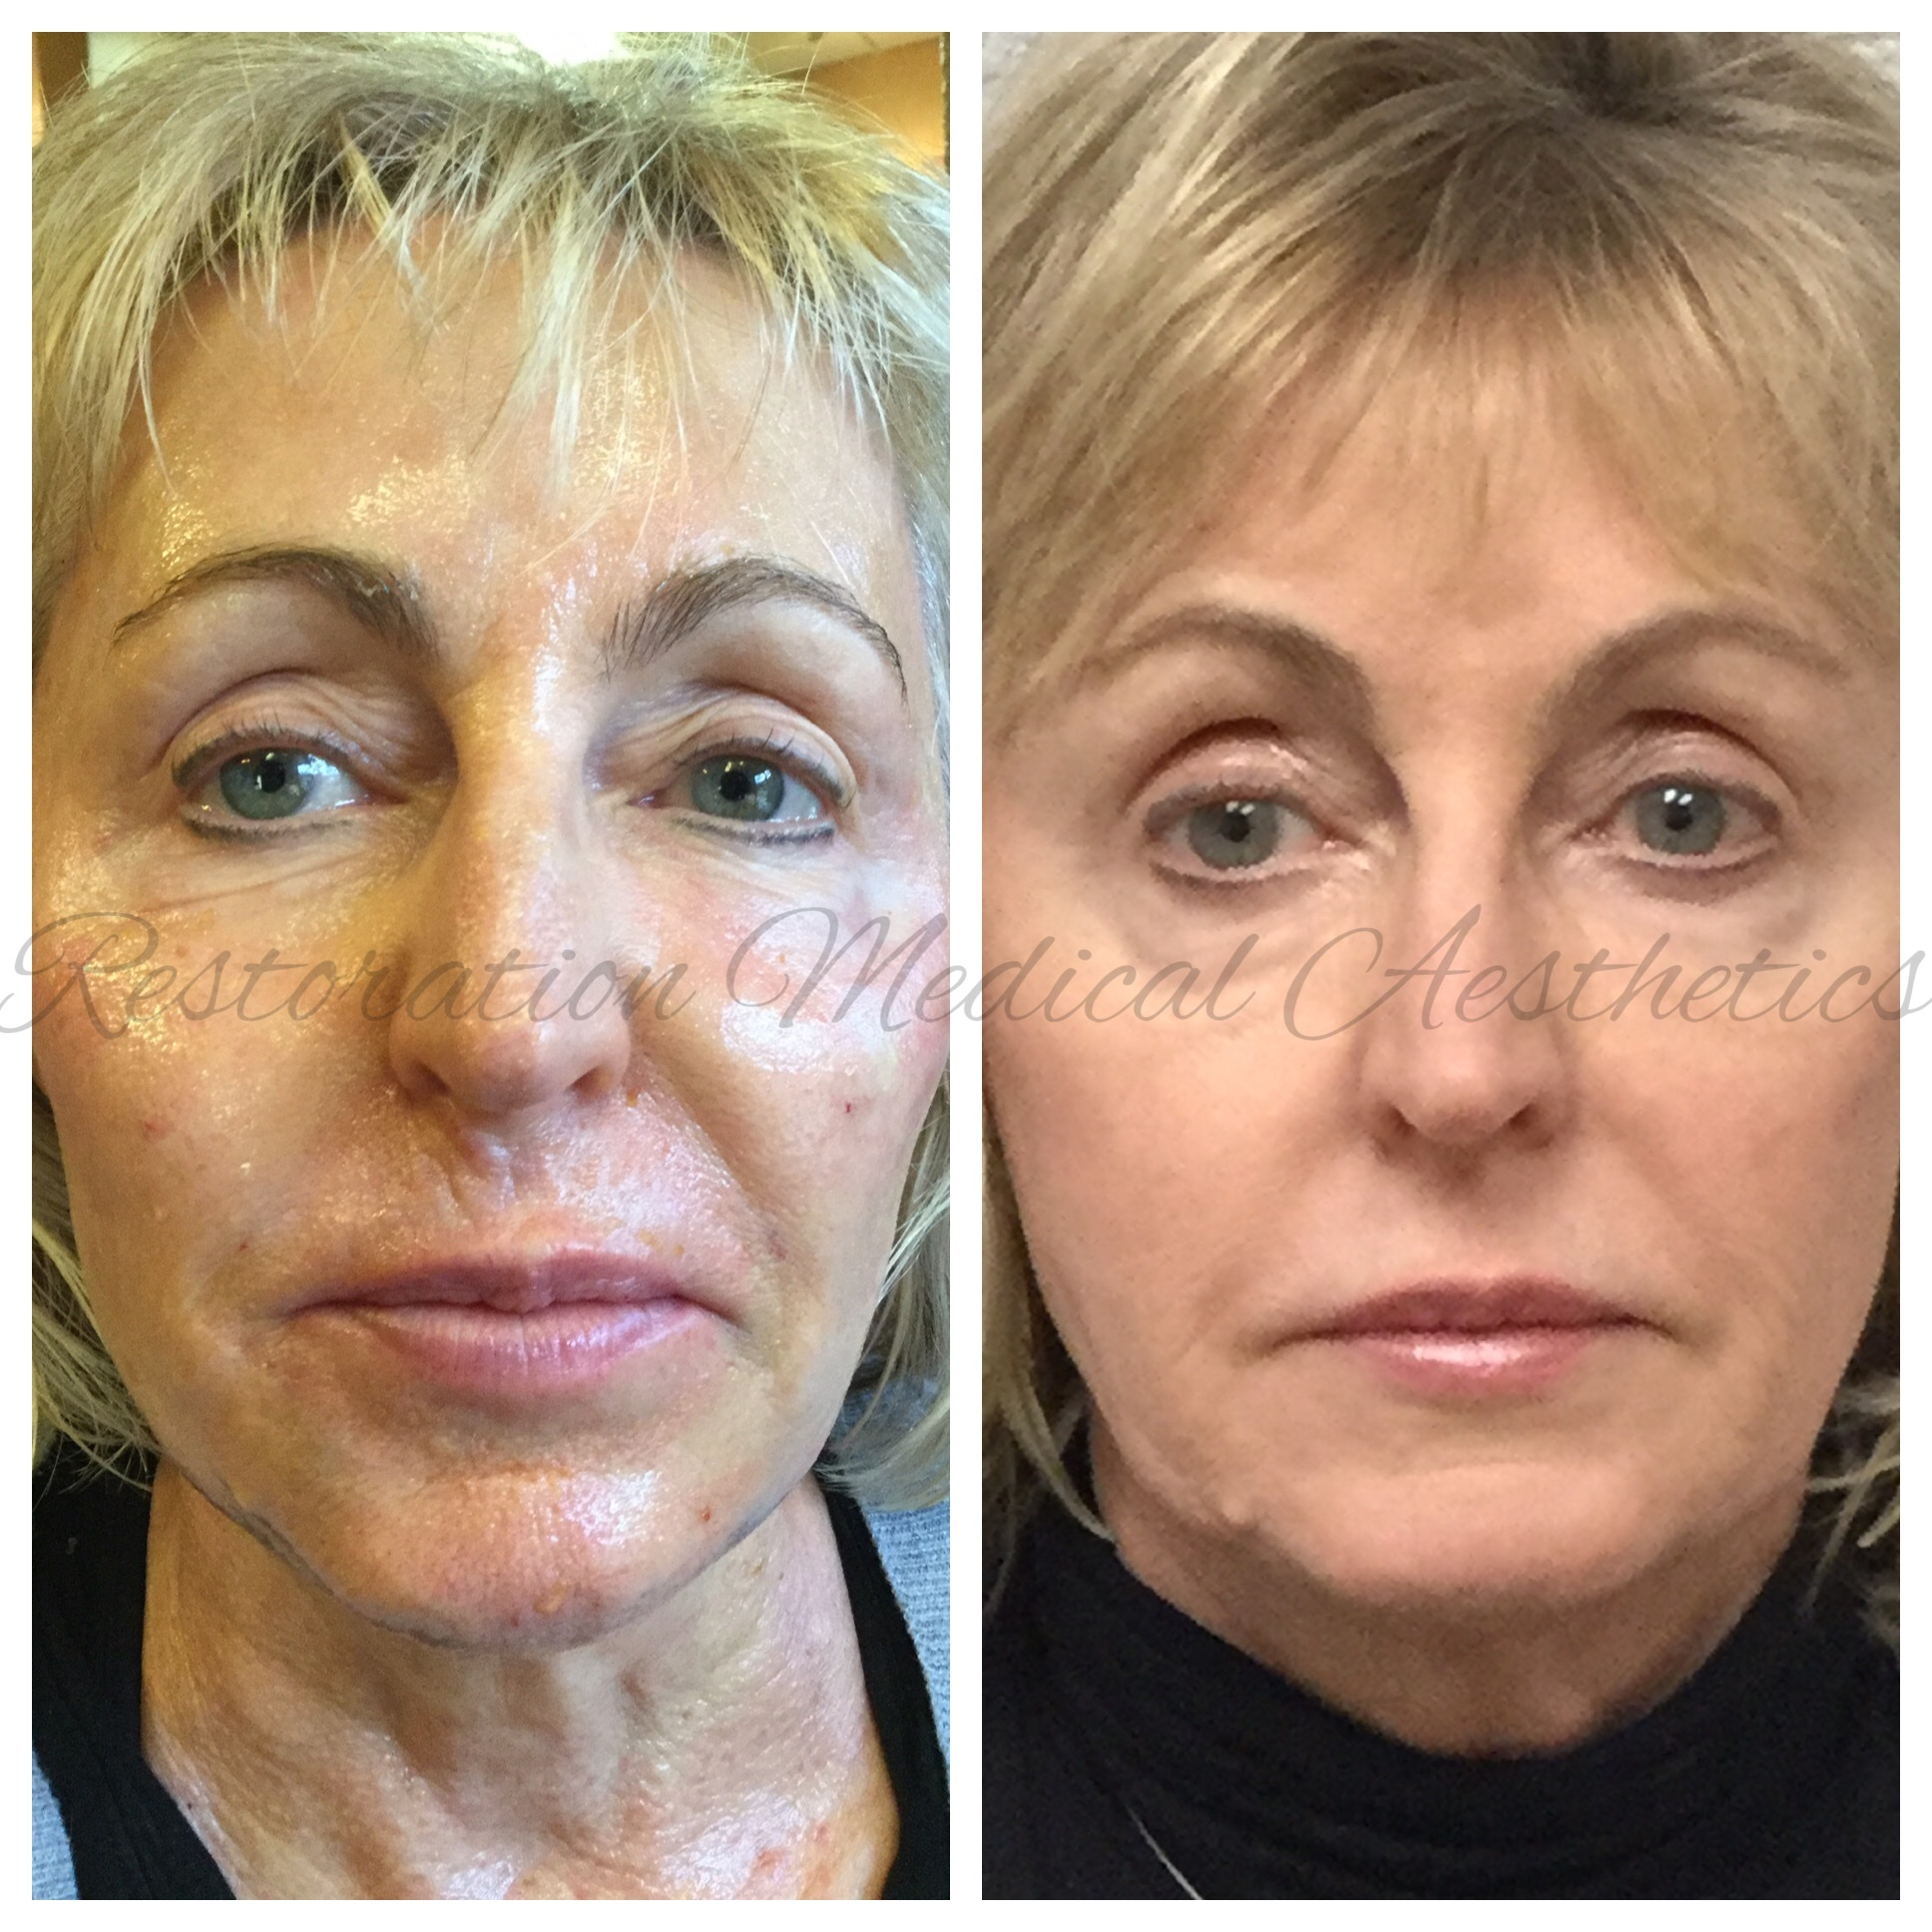 - BEFORE AND 3 WEEKS AFTER 1 TREATMENT